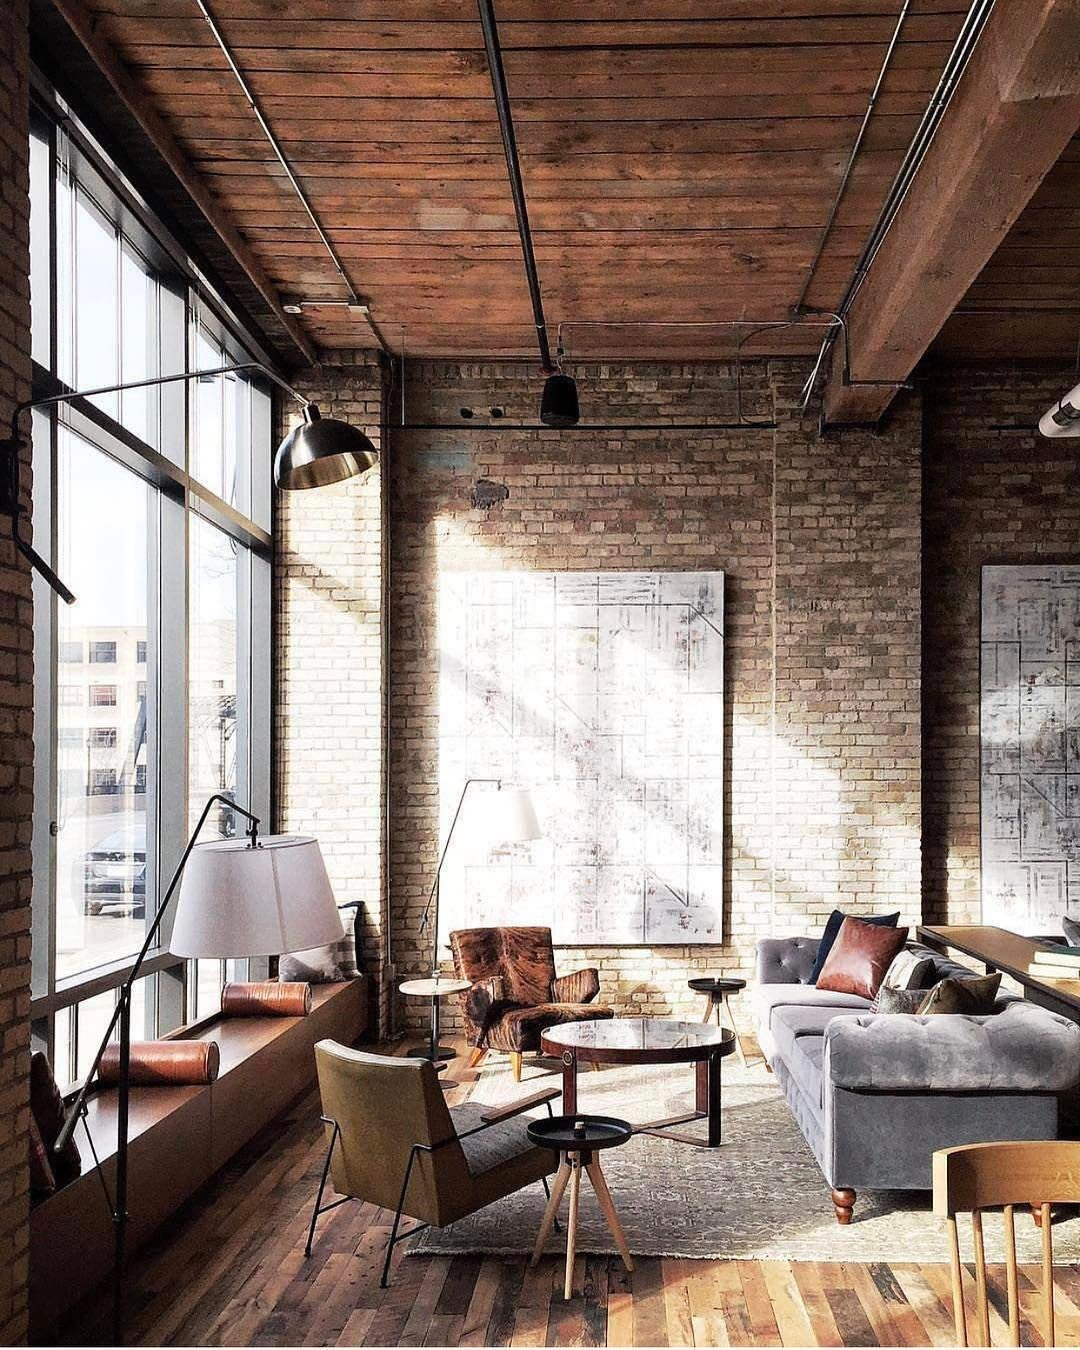 The Hewing Hotel is designed by ESG Architects and is located in ...